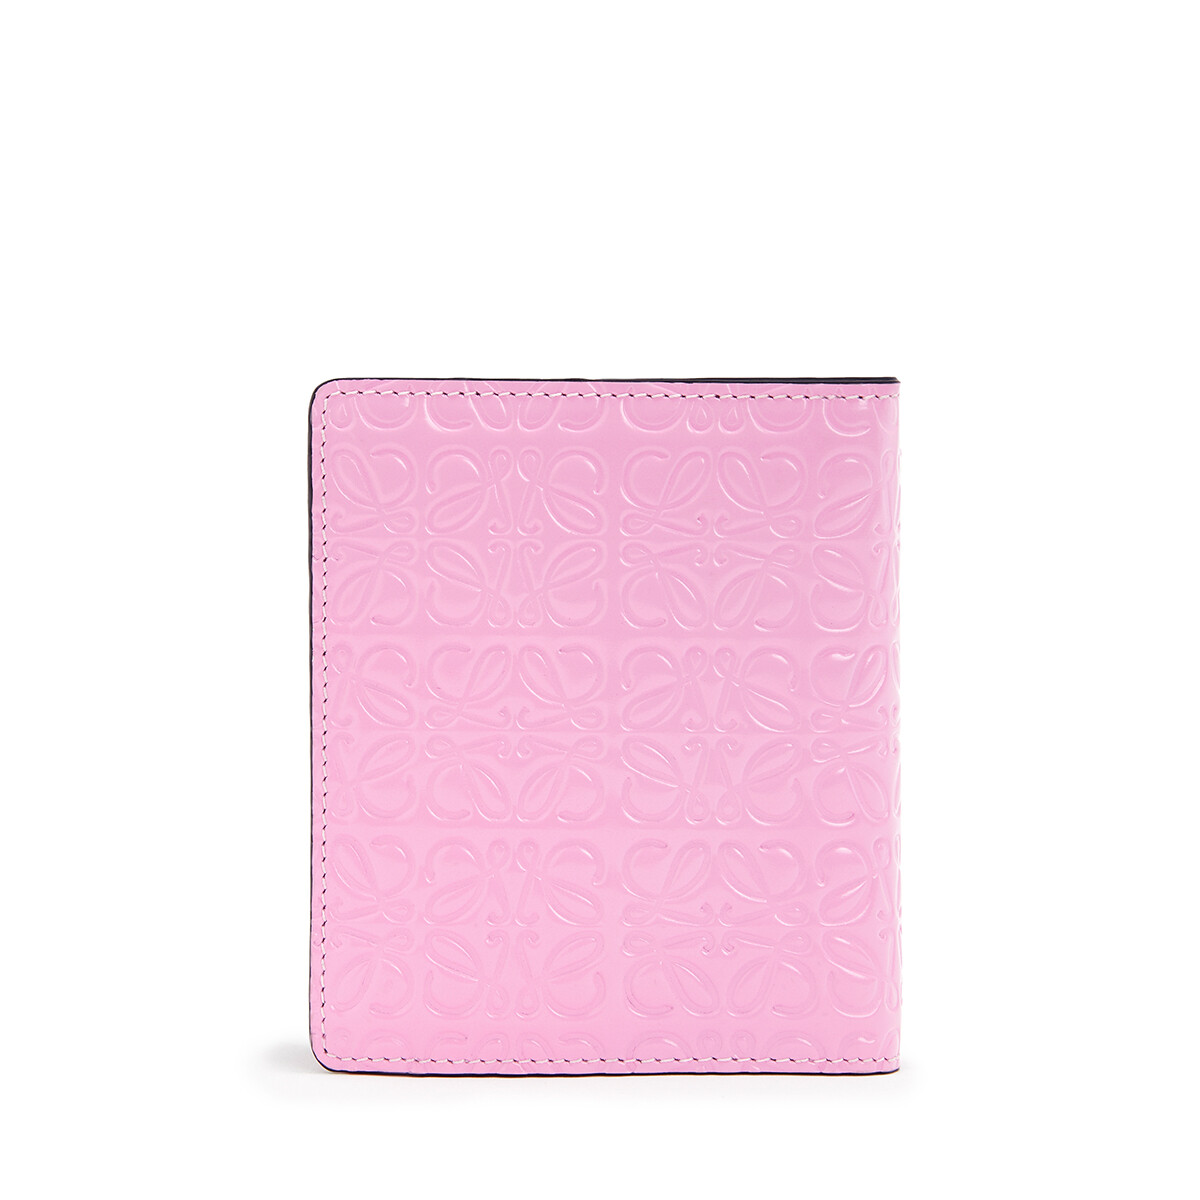 LOEWE Cartera Compact Zip Candy front